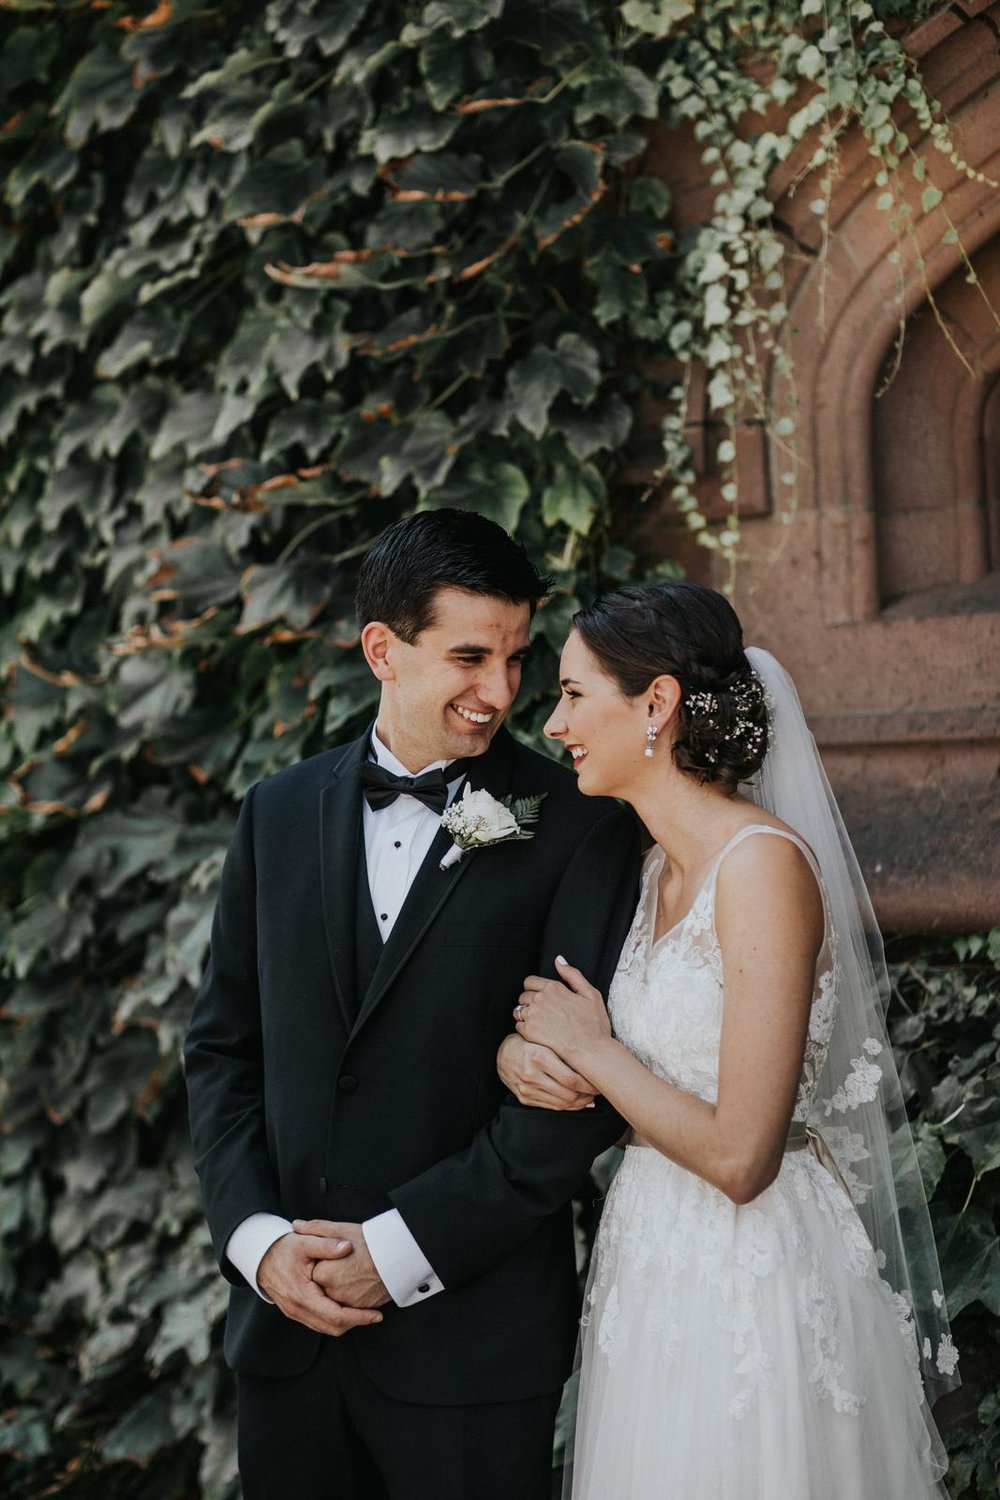 William Hendra Photography Princeton University Campus Wedding 4.JPG